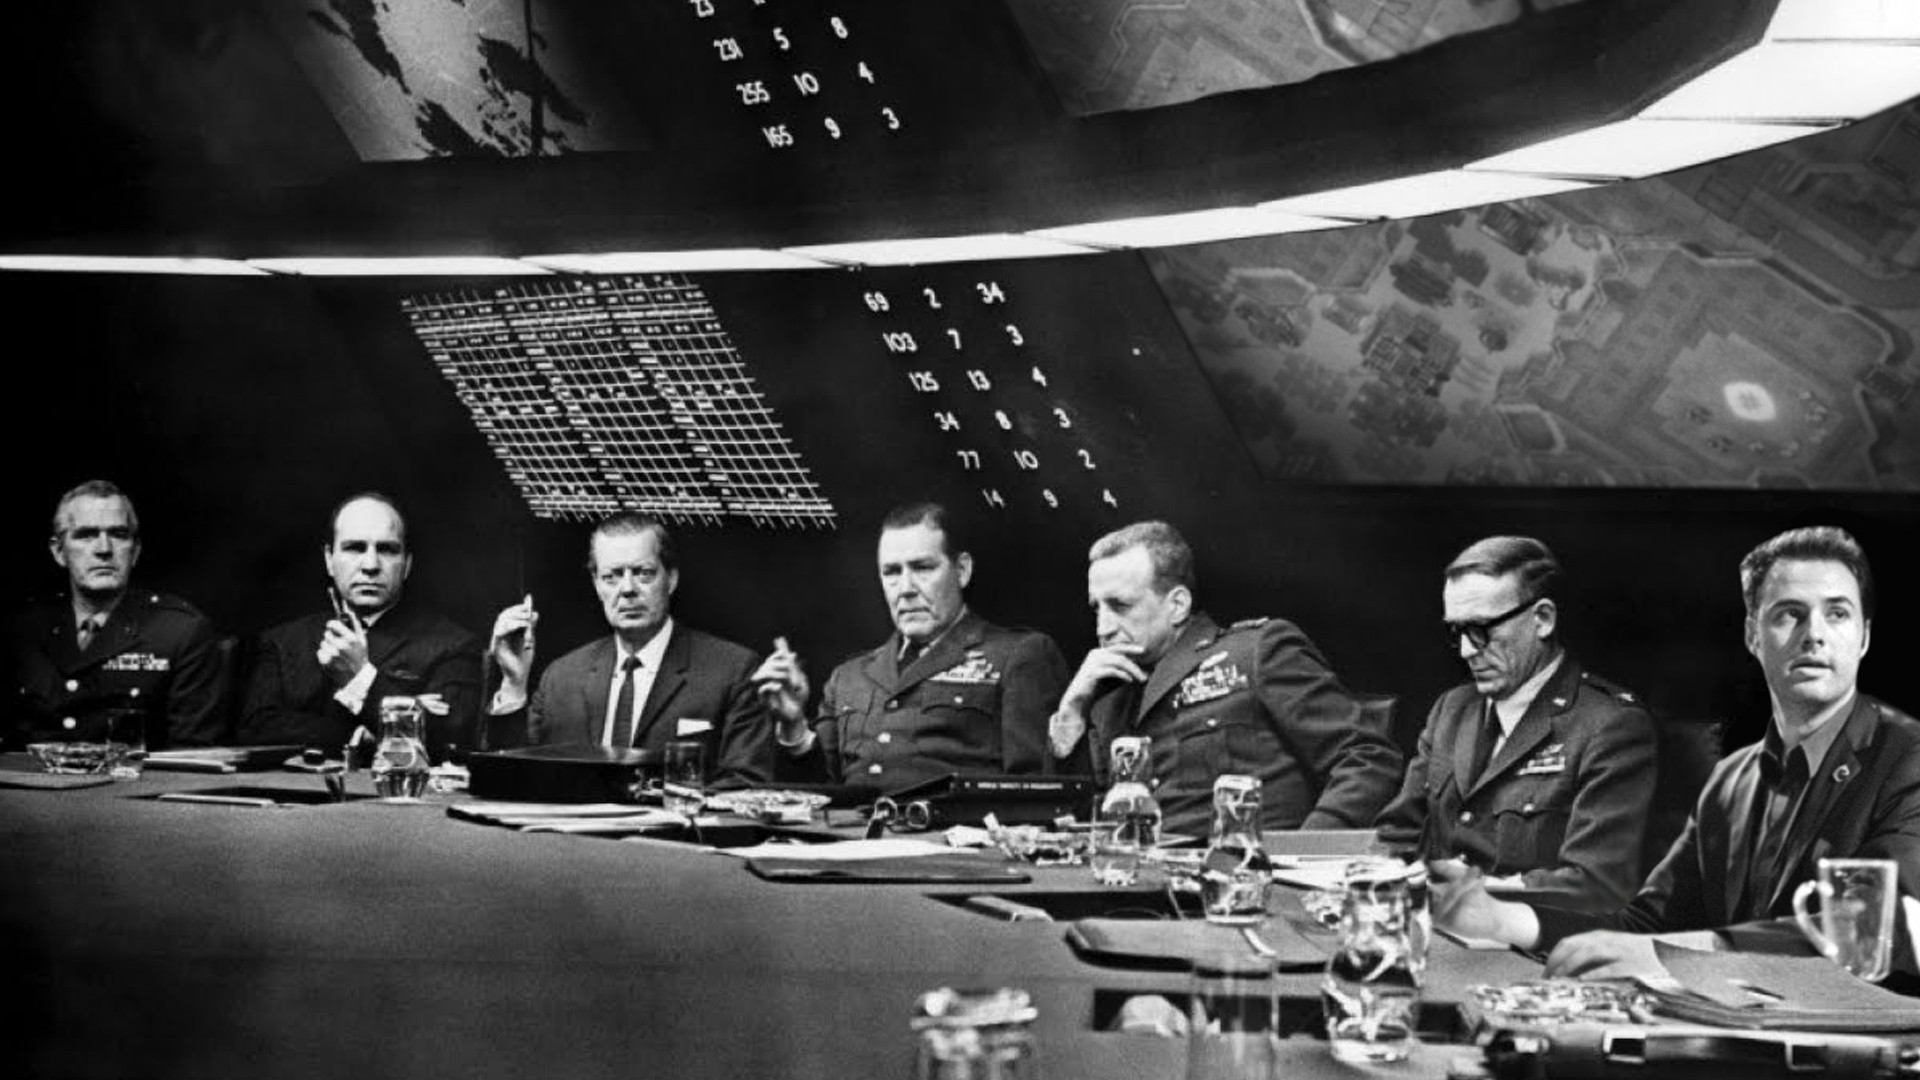 dr strangelove Amazoncom: dr strangelove, or: how i learned to stop worrying and love the bomb (special edition): james earl jones, peter bull, george c scott, keenan wynn.